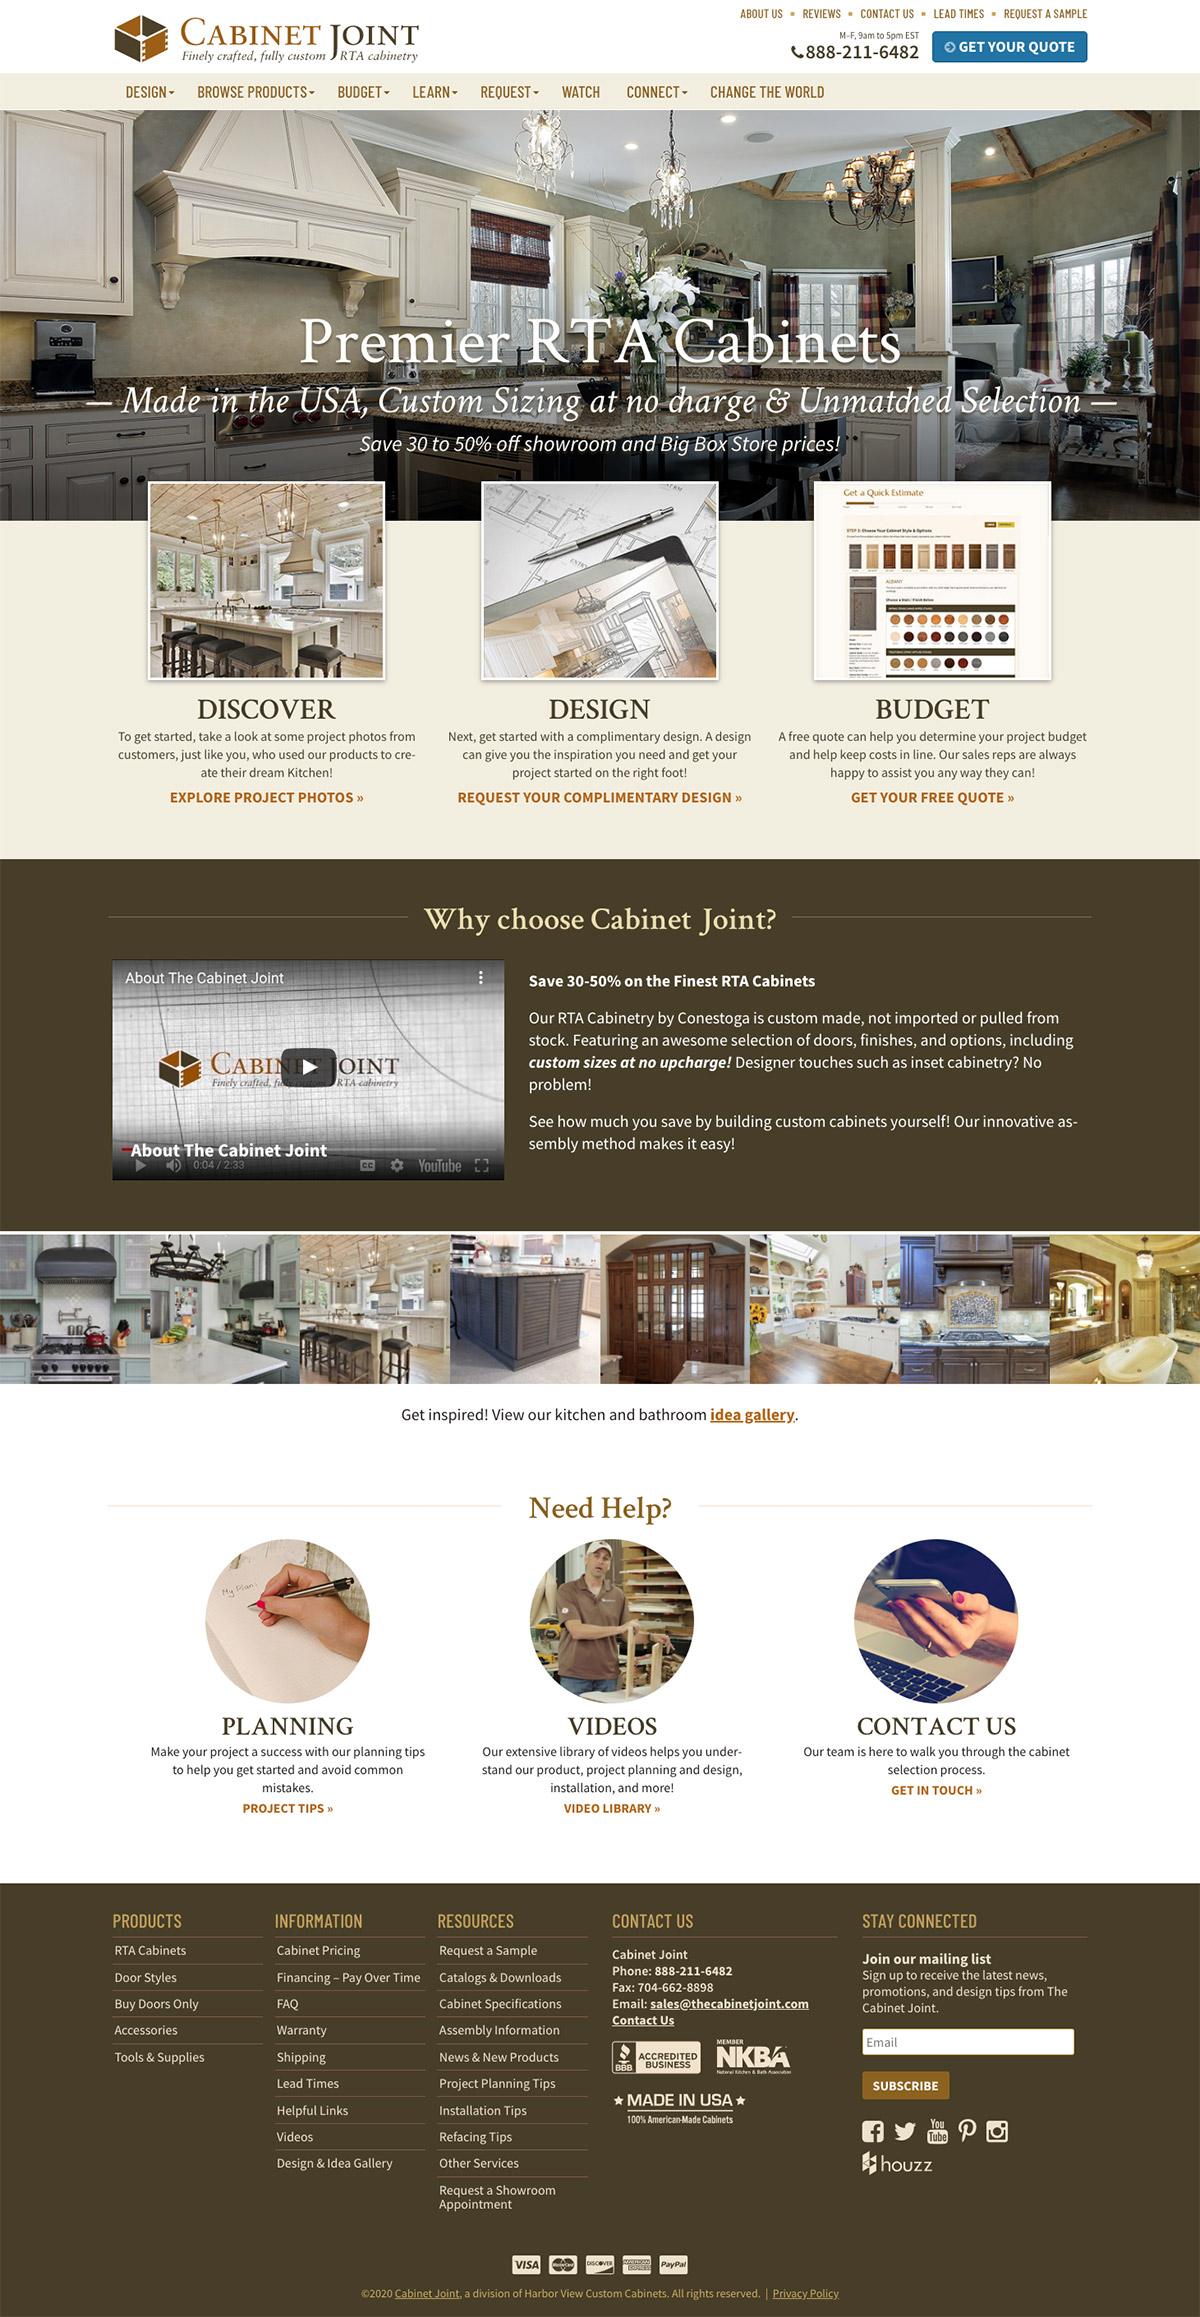 Cabinet Joint homepage